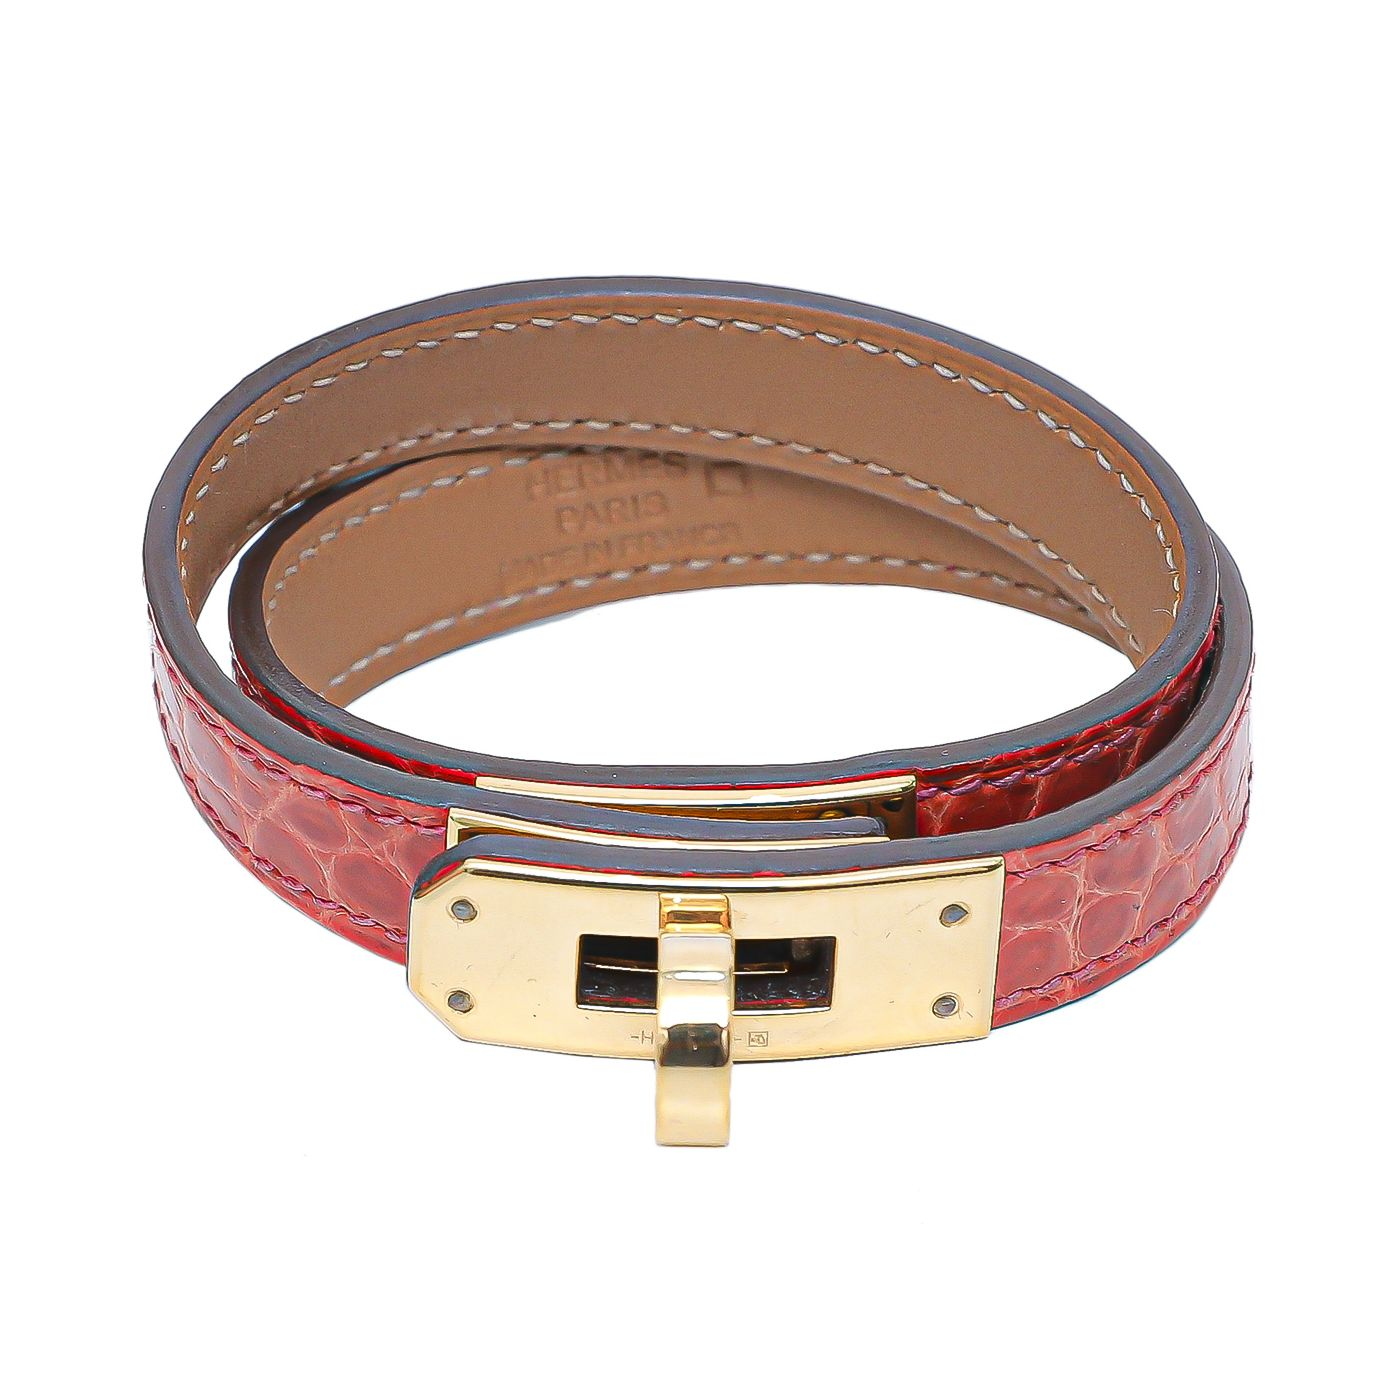 Hermes Geranium Kelly Alligator Double Bracelet